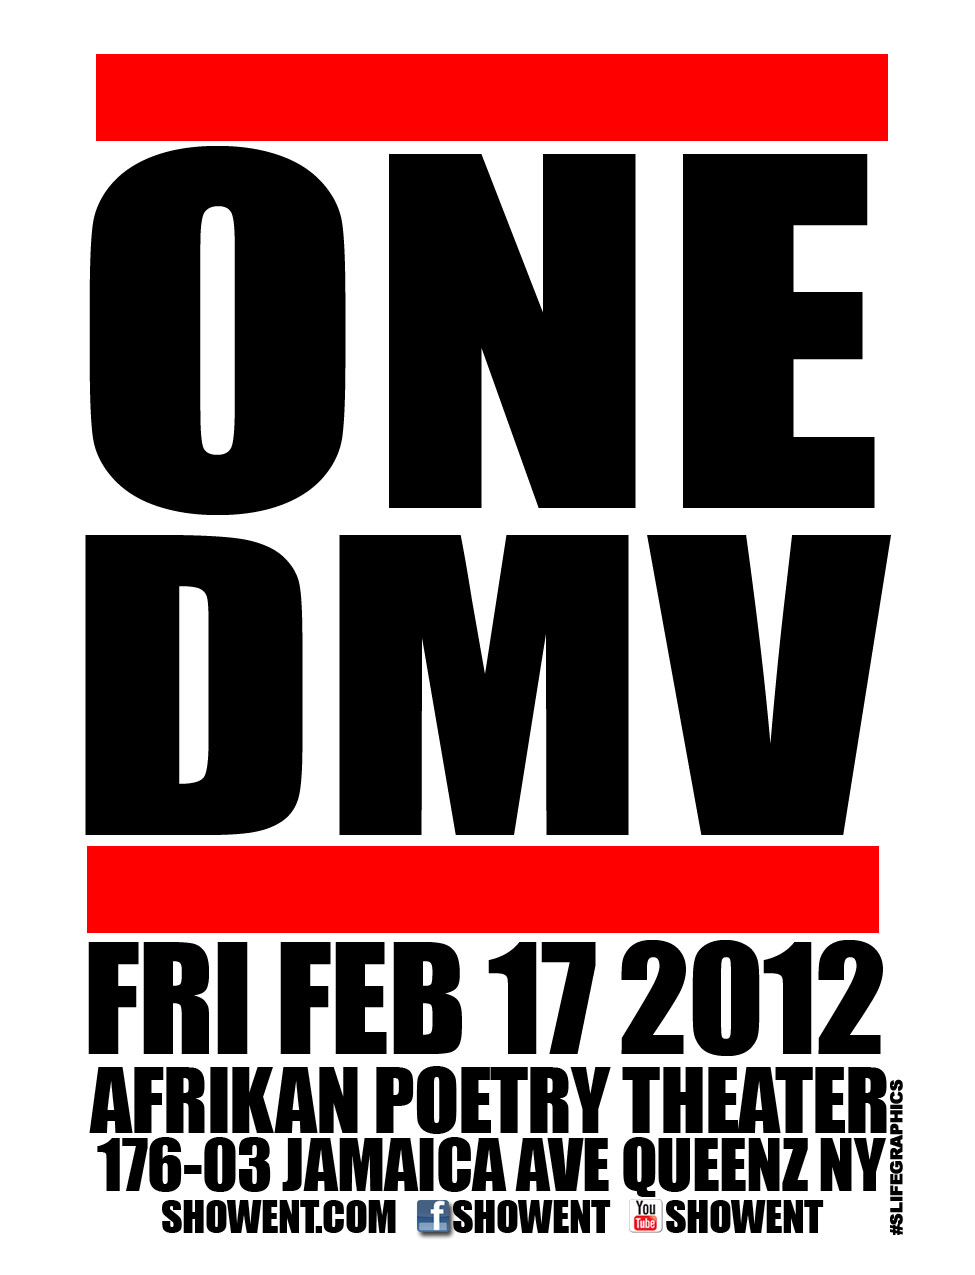 Spoken Word Poetry Open Mic Friday February 17 2012 Afrikan Poetry Theater